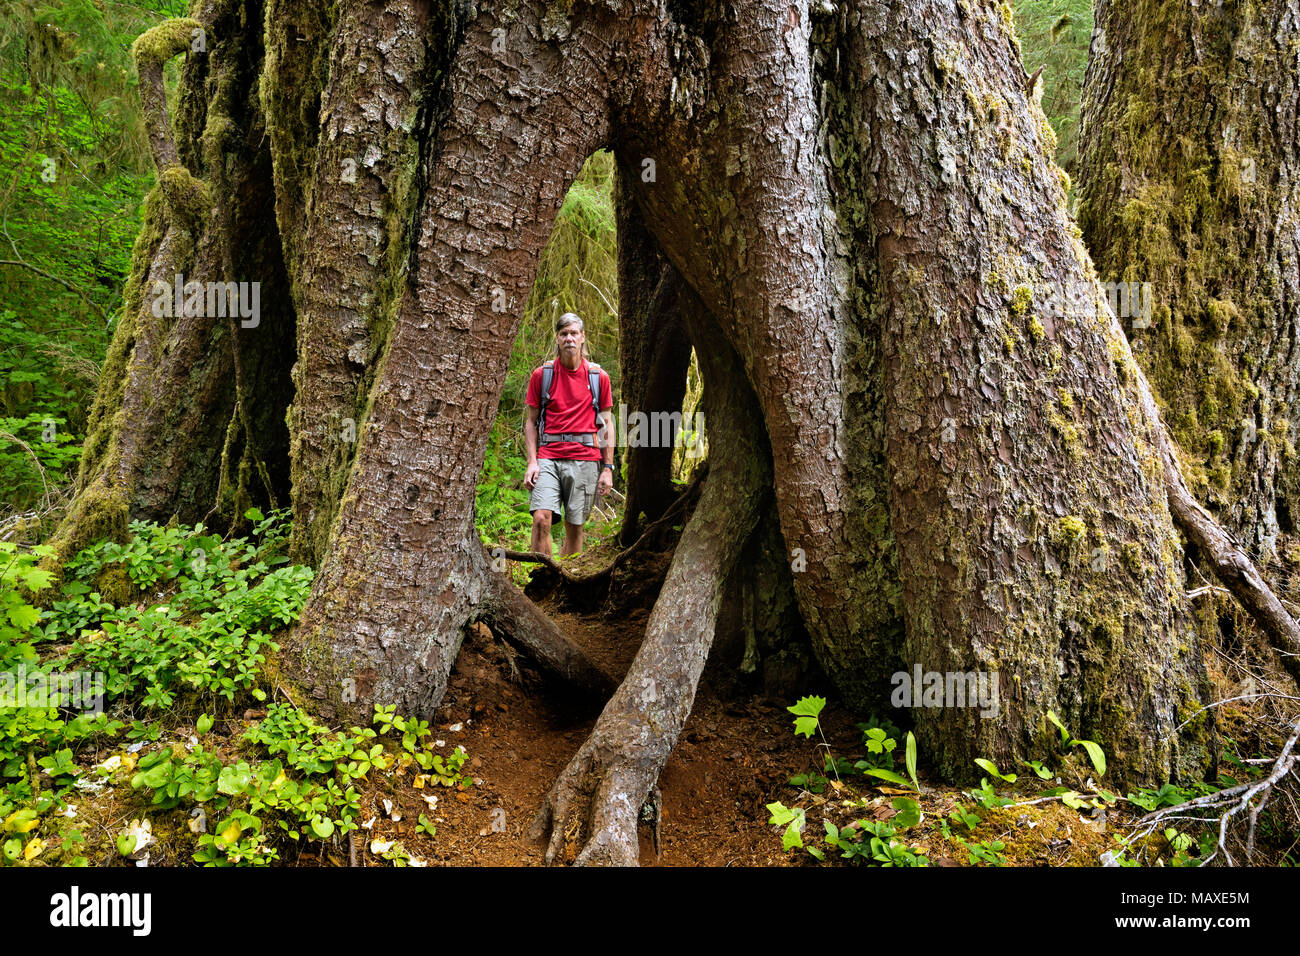 WA15005-00...WASHINGTON - Hiker inspecting a large tree that got its start on a nurse log and now has an open space at the bottom in the Hoh Rain Fore - Stock Image